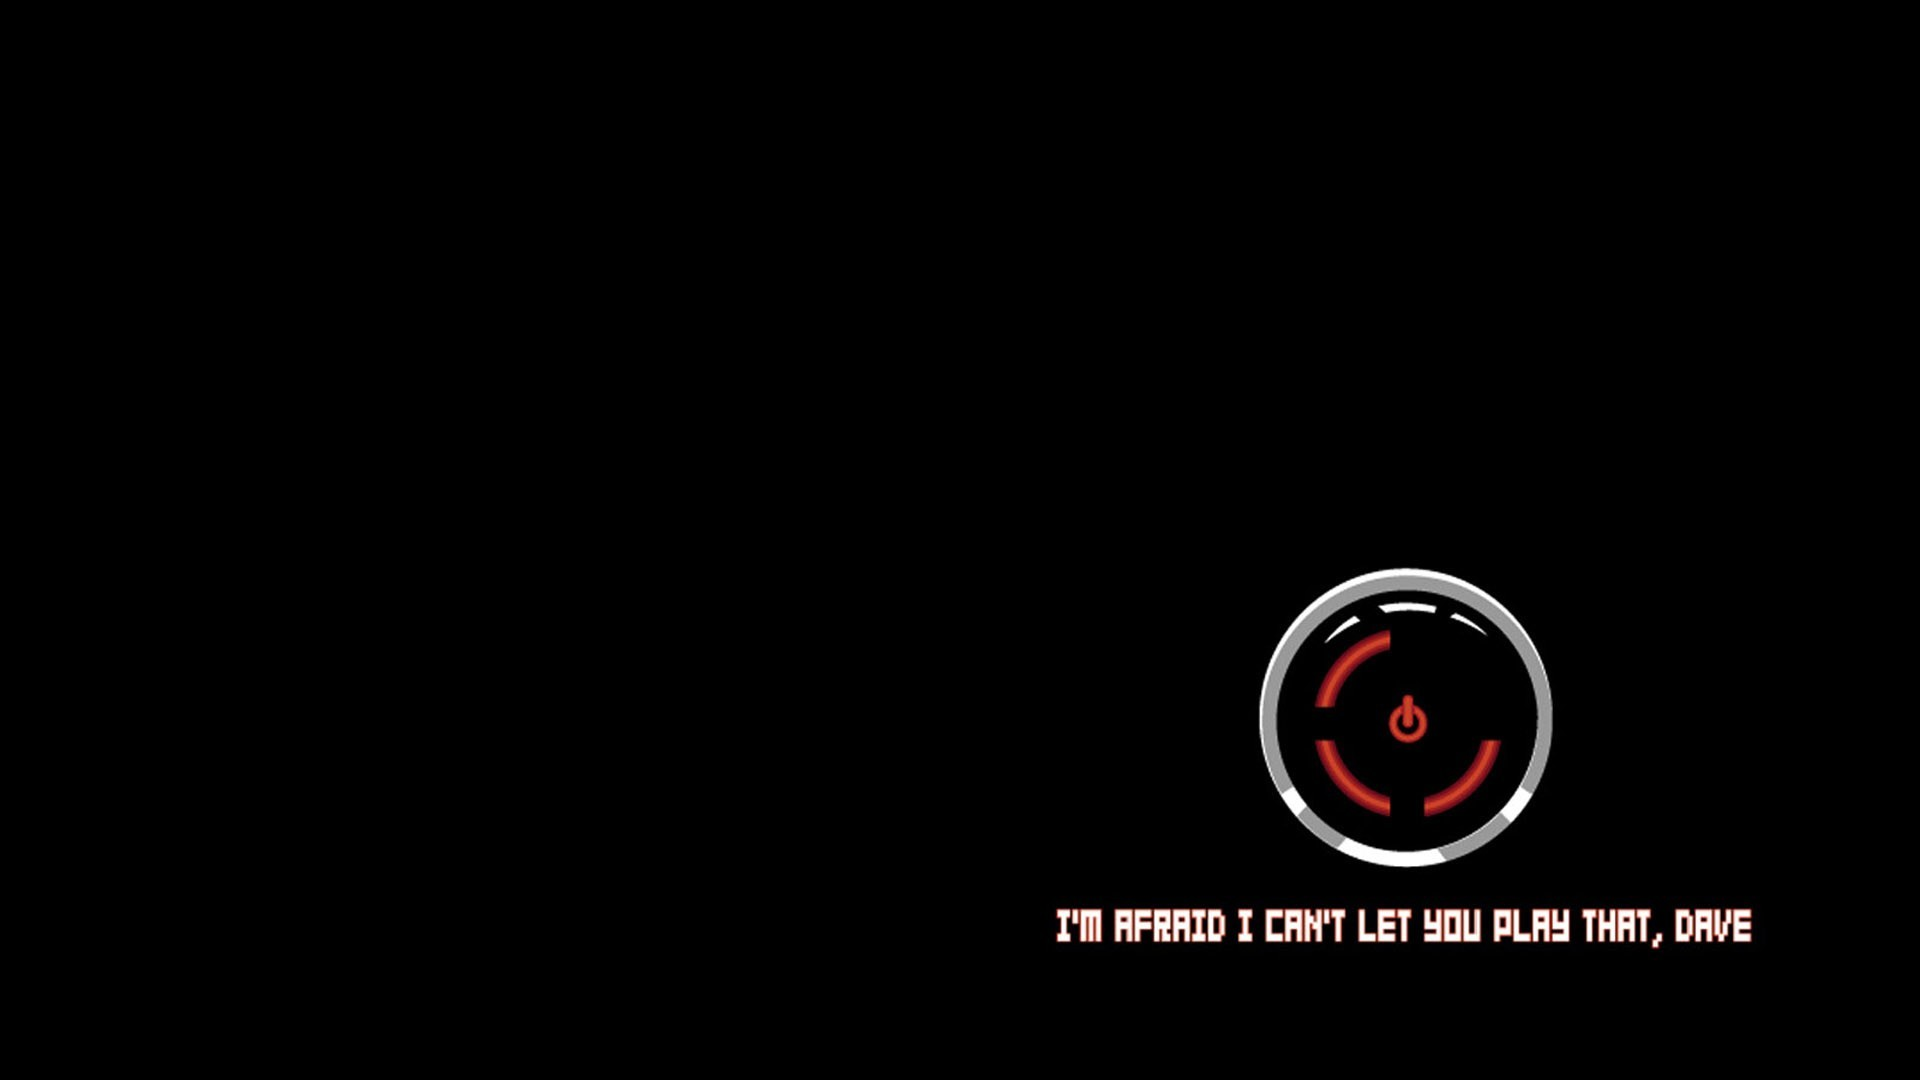 1920x1080 HAL 9000, Xbox, Xbox 360, Red Ring Of Death, Simple, Black, Black  Background, Humor, Video Games, 2001: A Space Odyssey, Robot Wallpapers HD  / Desktop and ...